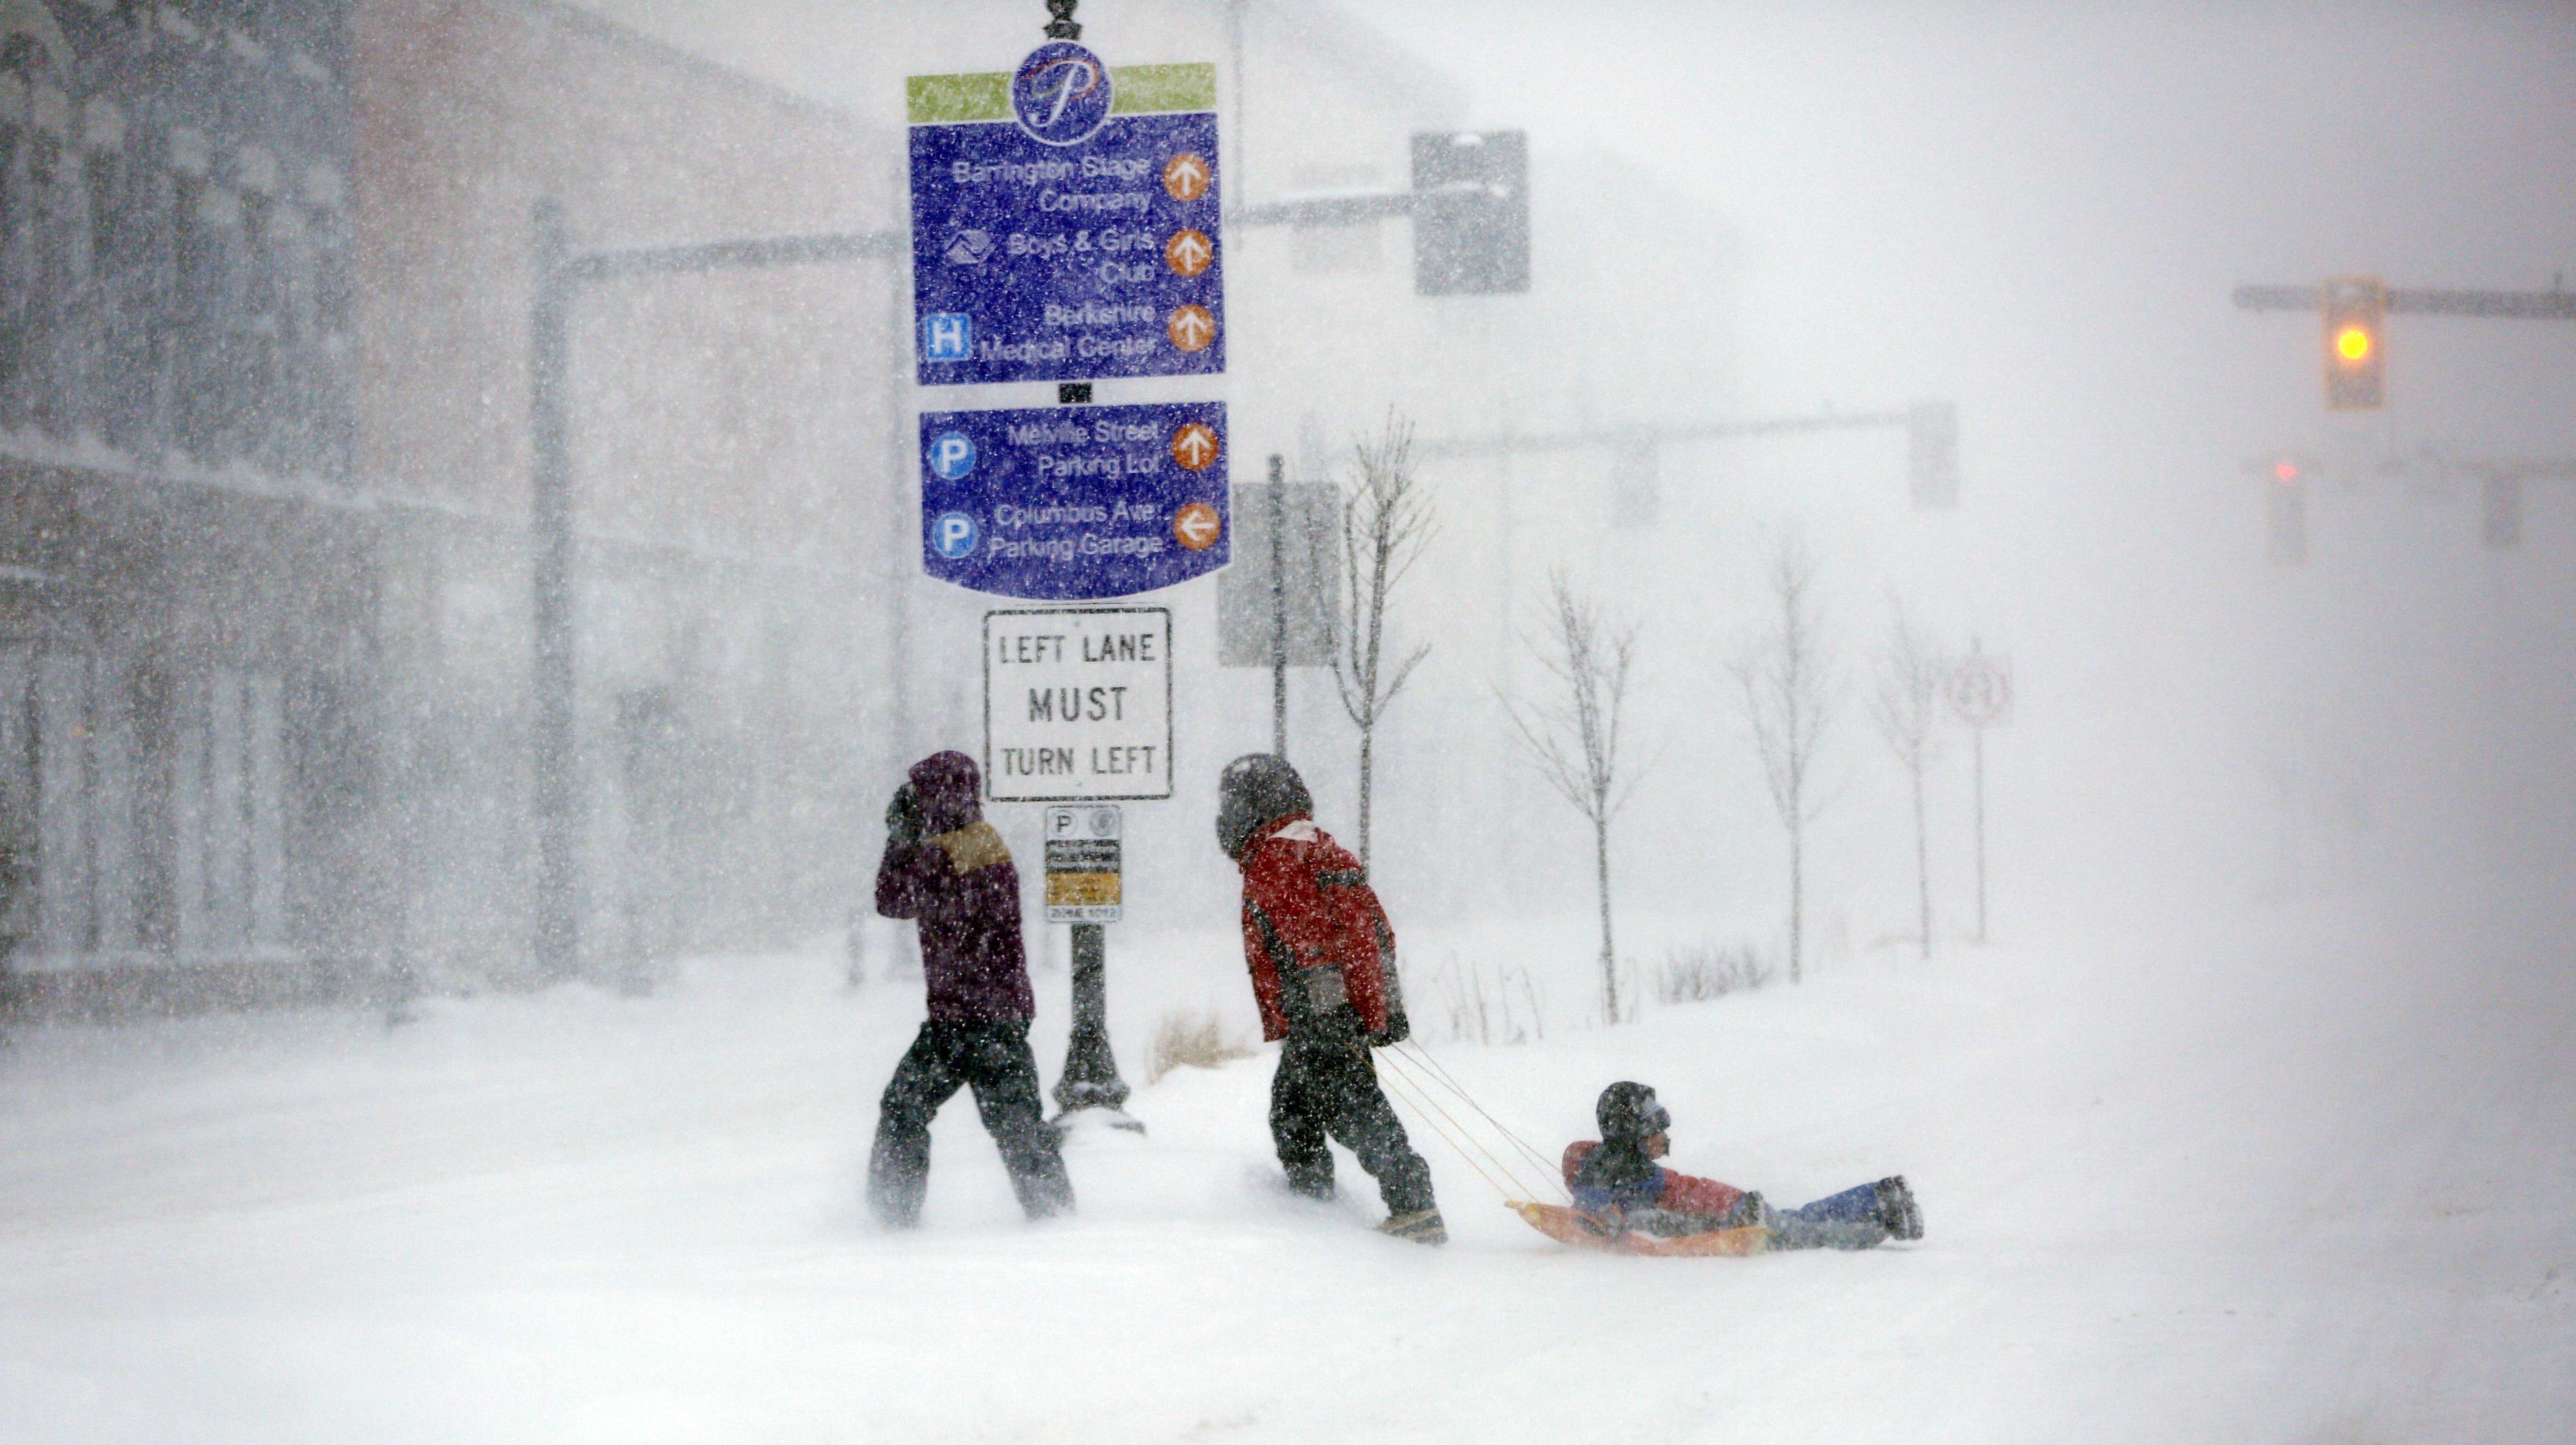 Walkers make their way through the snow-filled streets of Pittsfield, Mass., Tuesday, March 14, 2017.